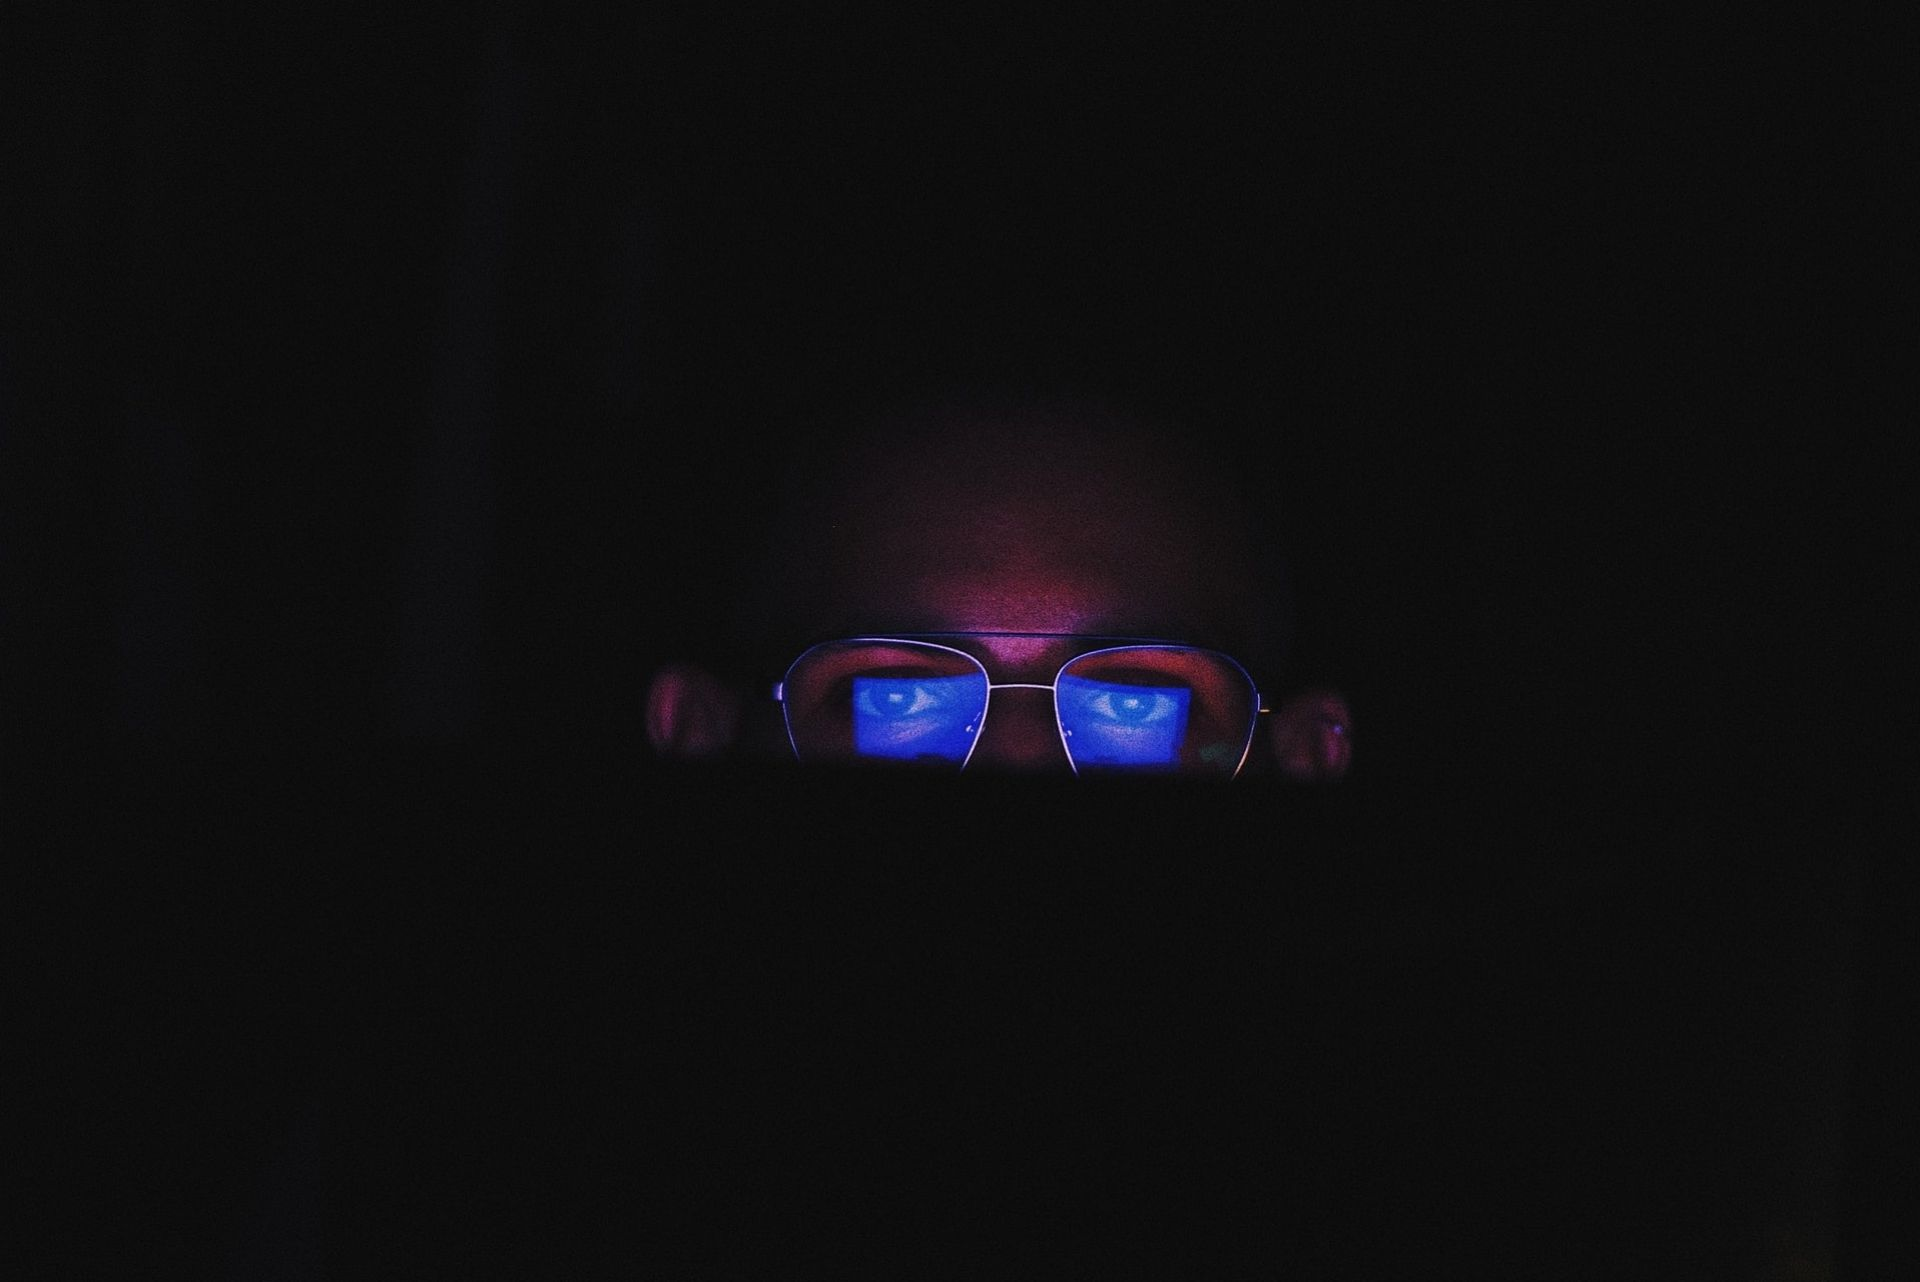 What Are Blue Light Glasses, and What Do They Do?